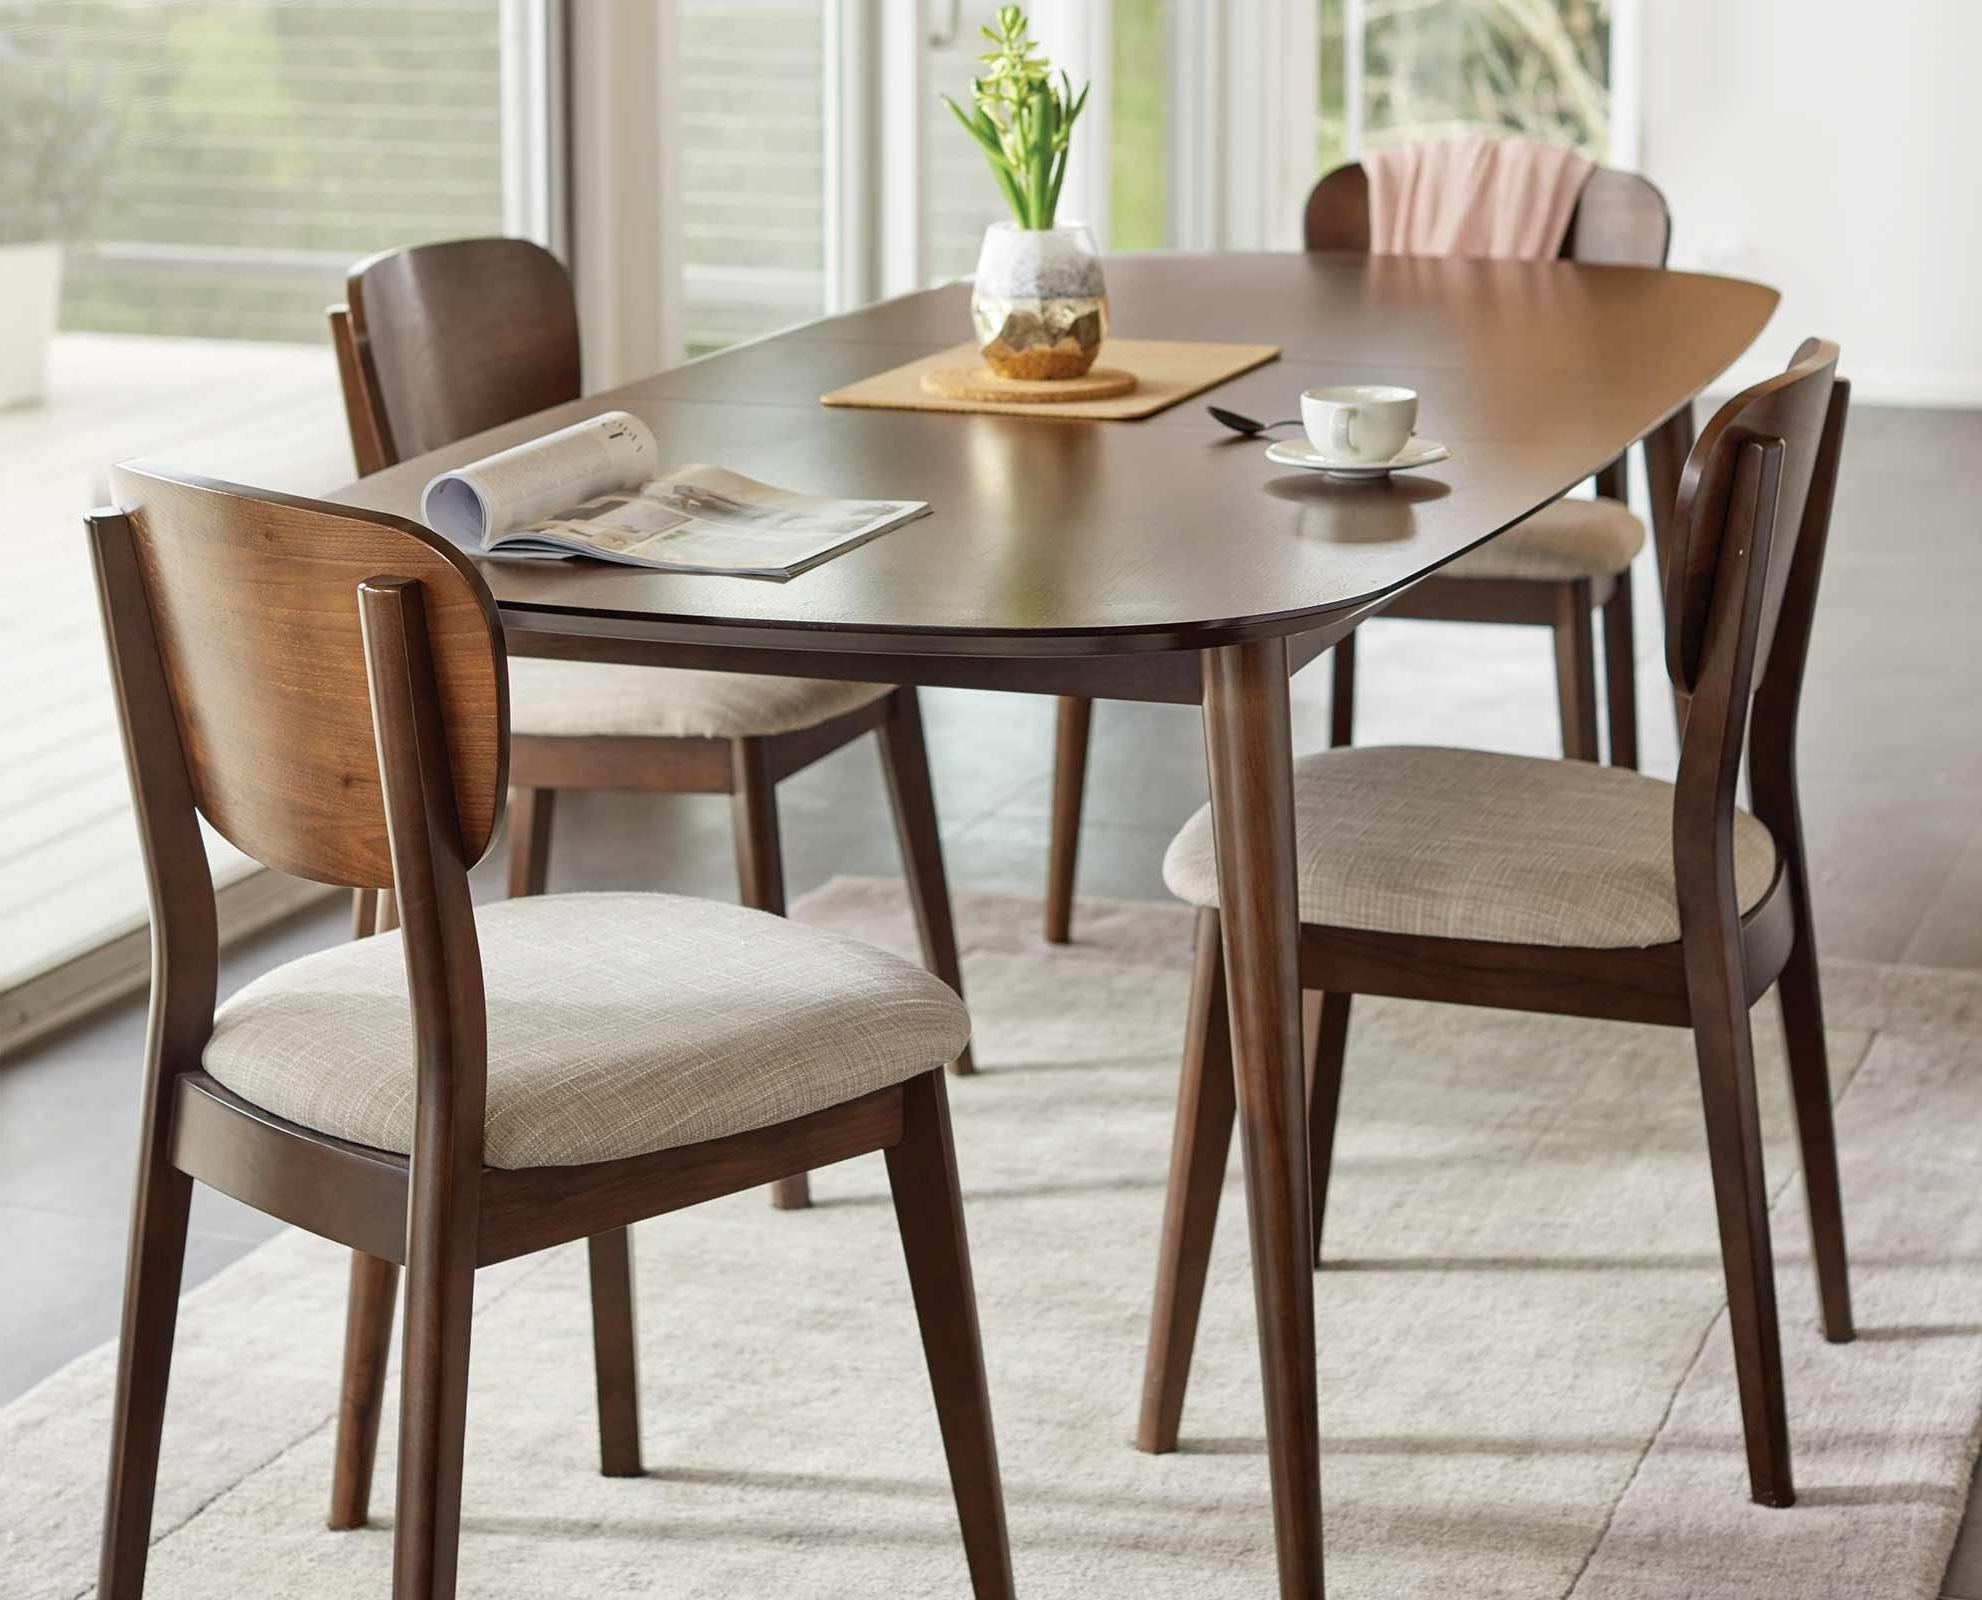 Jaxon Grey 5 Piece Round Extension Dining Sets With Wood Chairs Within Popular Dinex Alfa Extension Dining Table New Jaxon Extension Rectangle (View 21 of 25)